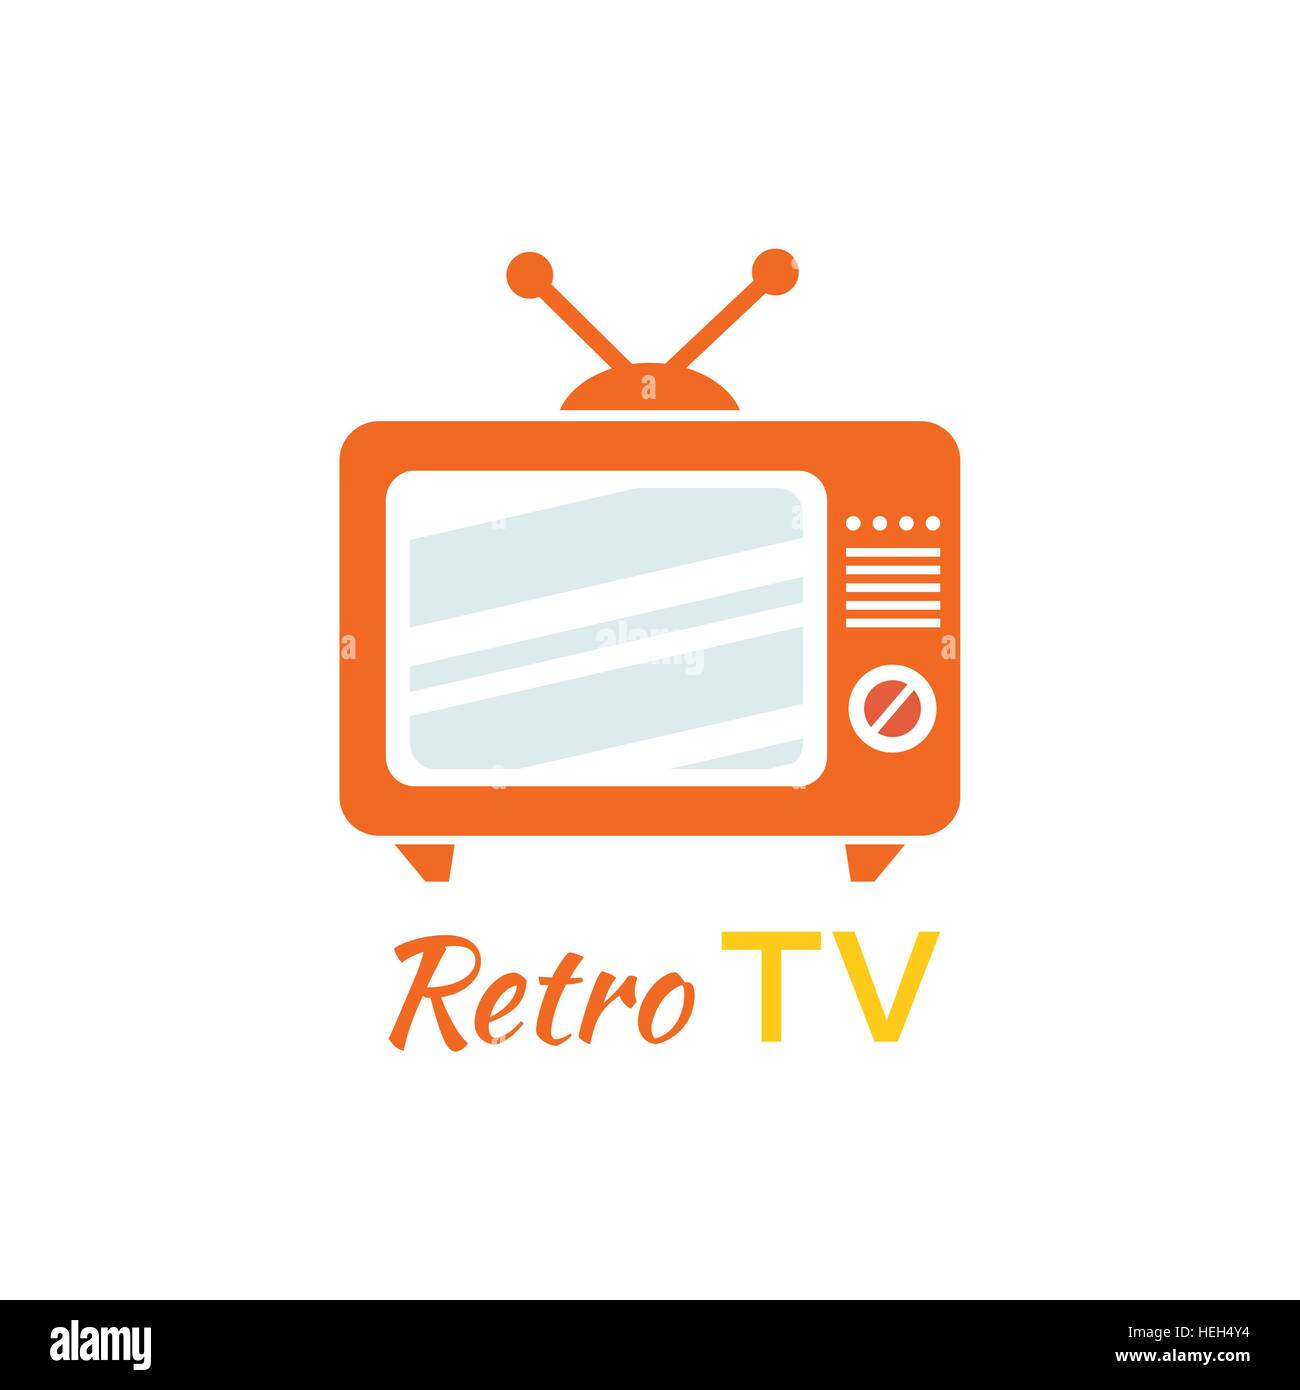 Retro Tv Logo Design Flat Icon Vintage Tv Old Tv Retro